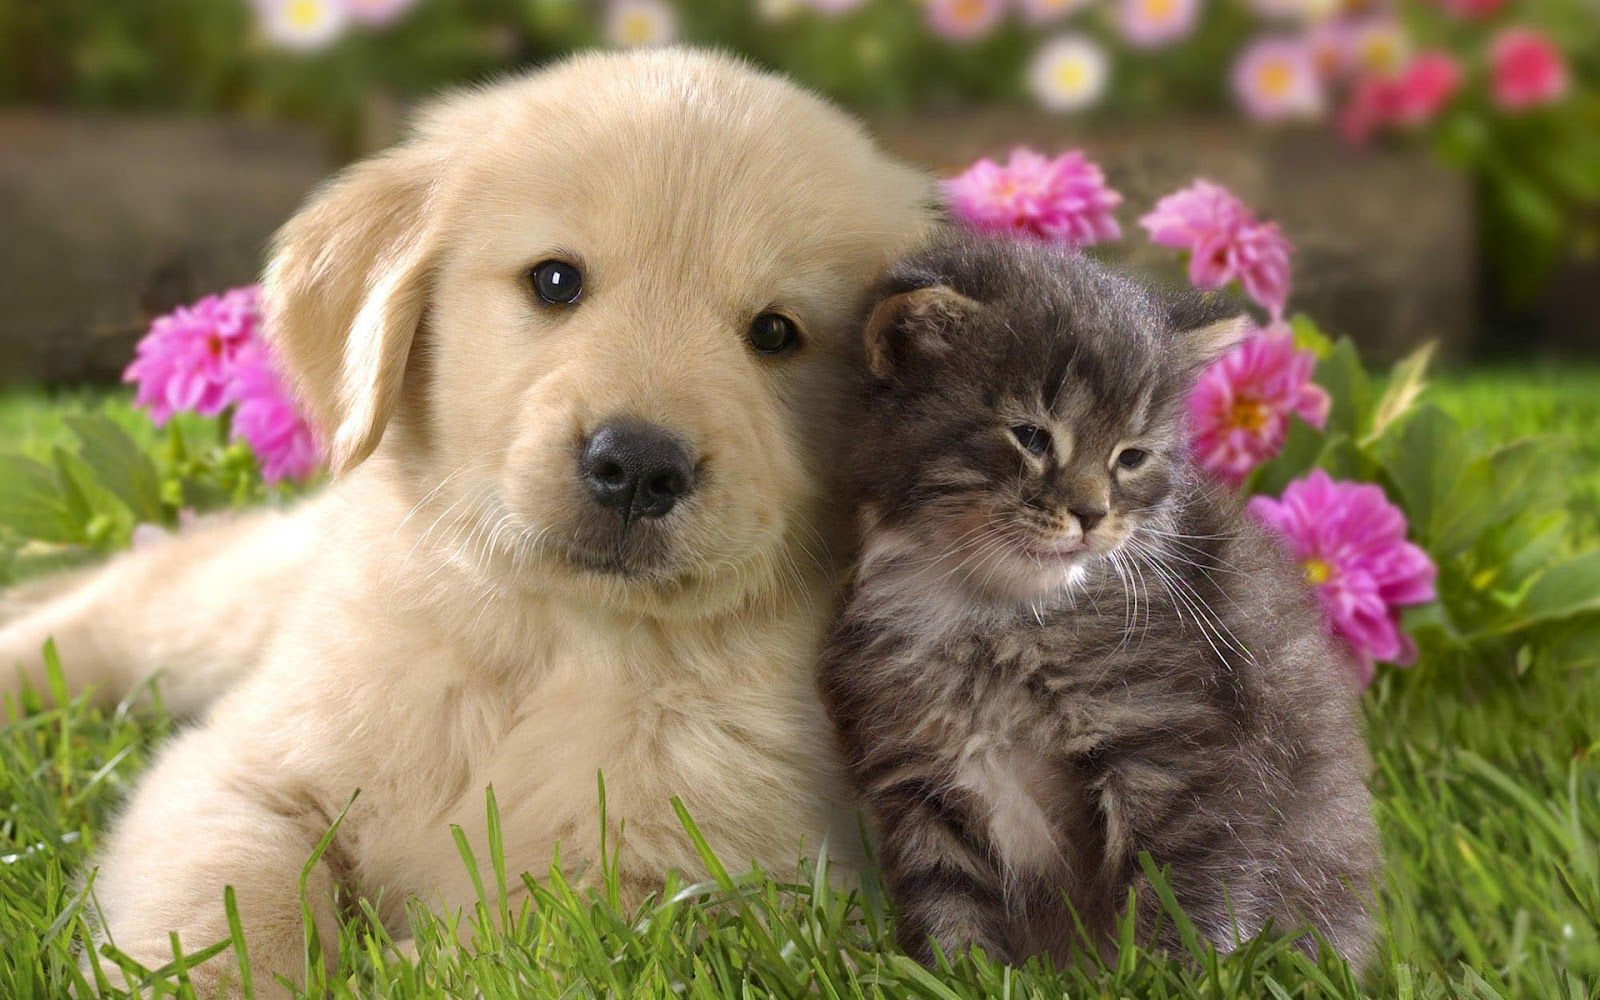 Animal Dog Cuddle Cat Wallpaper Animal Animal Wallpaper Black Cat Dog Dog Wallpaper Funny Animal 16819 Cute Cats And Dogs Kittens And Puppies Cute Dogs